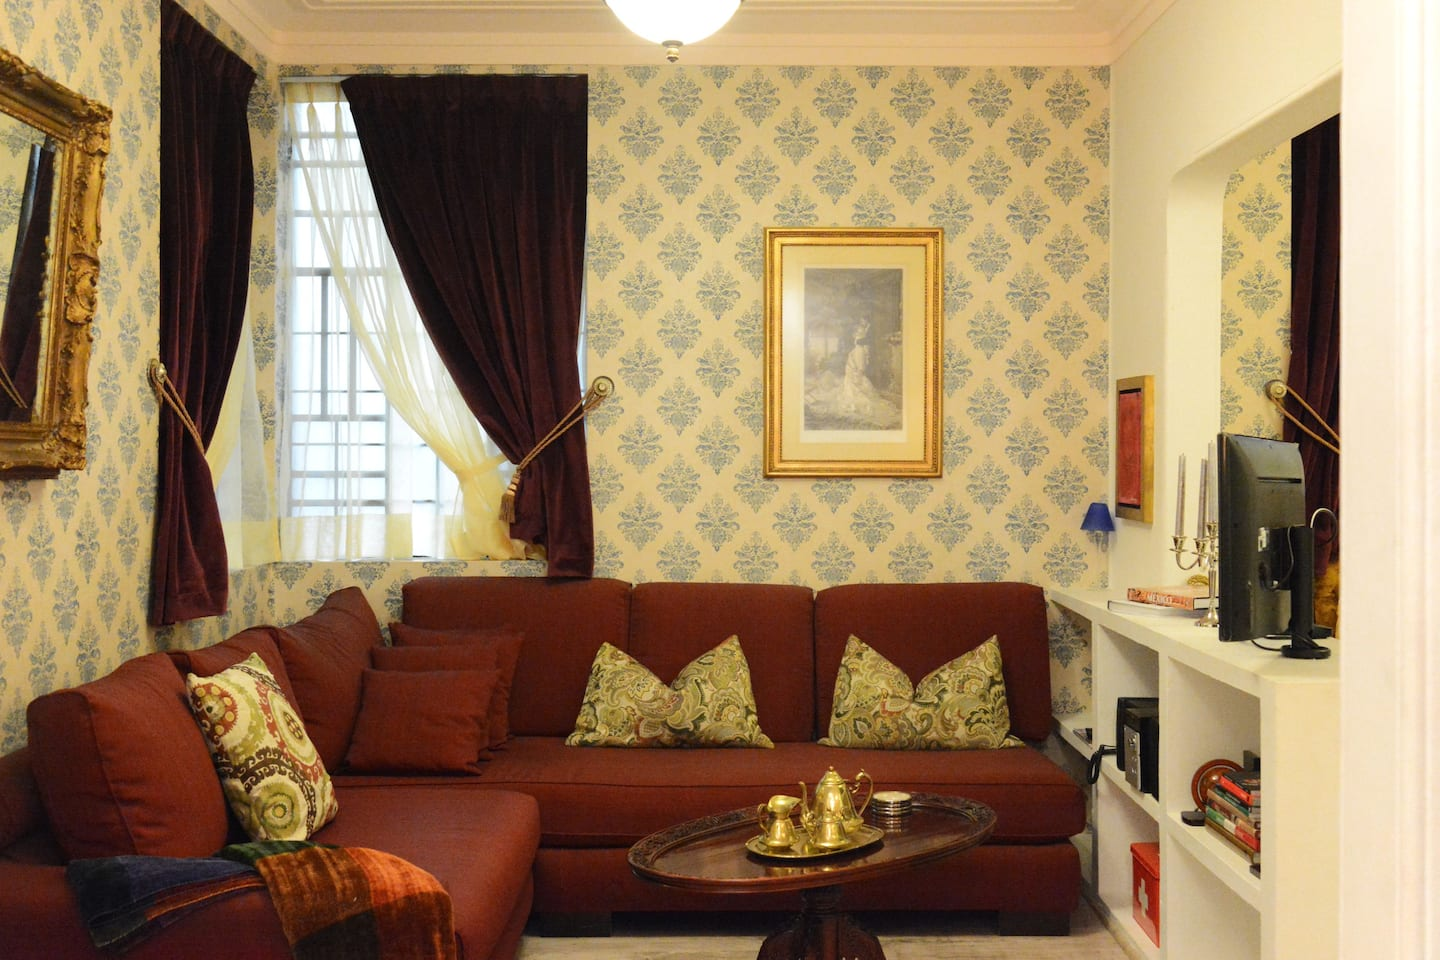 VRBO Mexico City: Vintage style living room with burgundy sofa and wallpaper